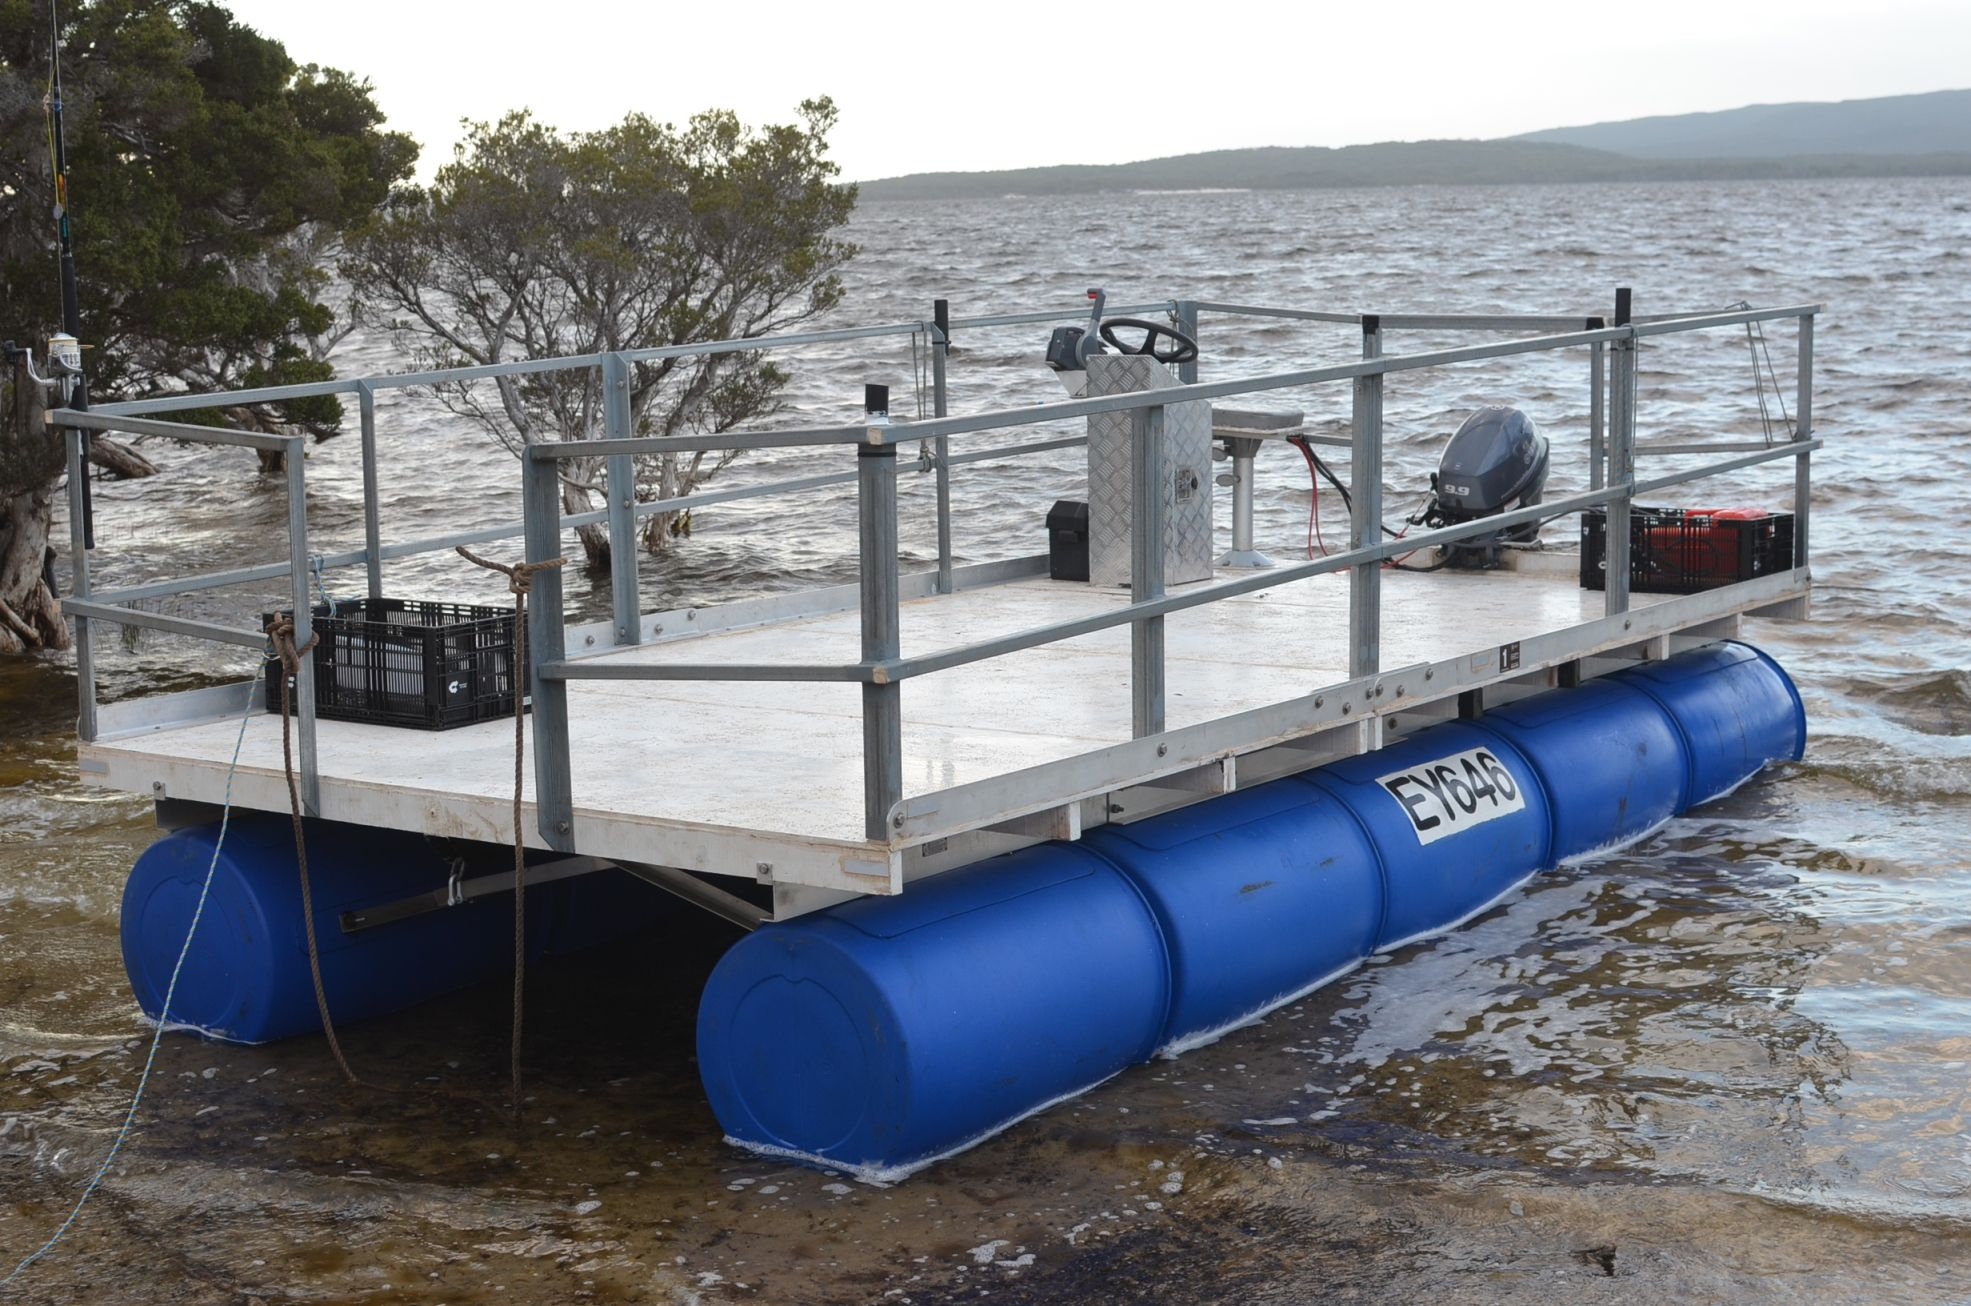 This pontoon is great way to upcycle barrels and get out on the water.